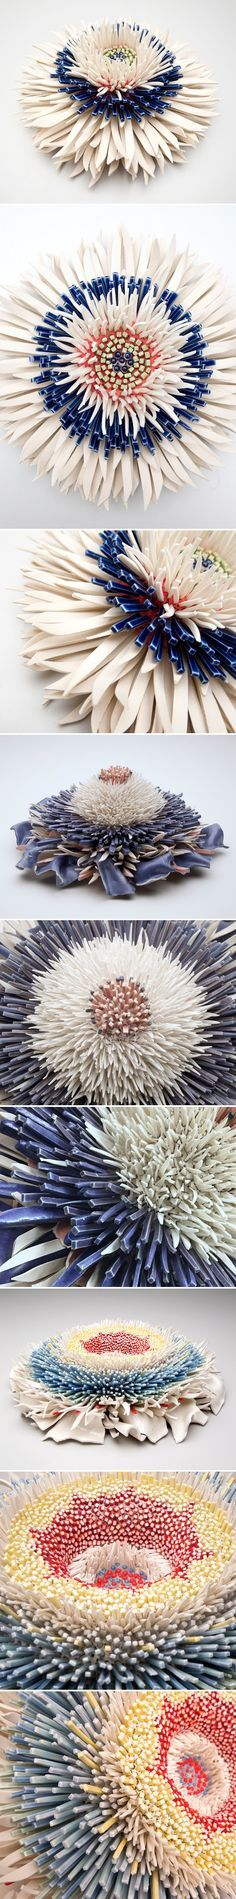 ceramic flowers by zemer peled